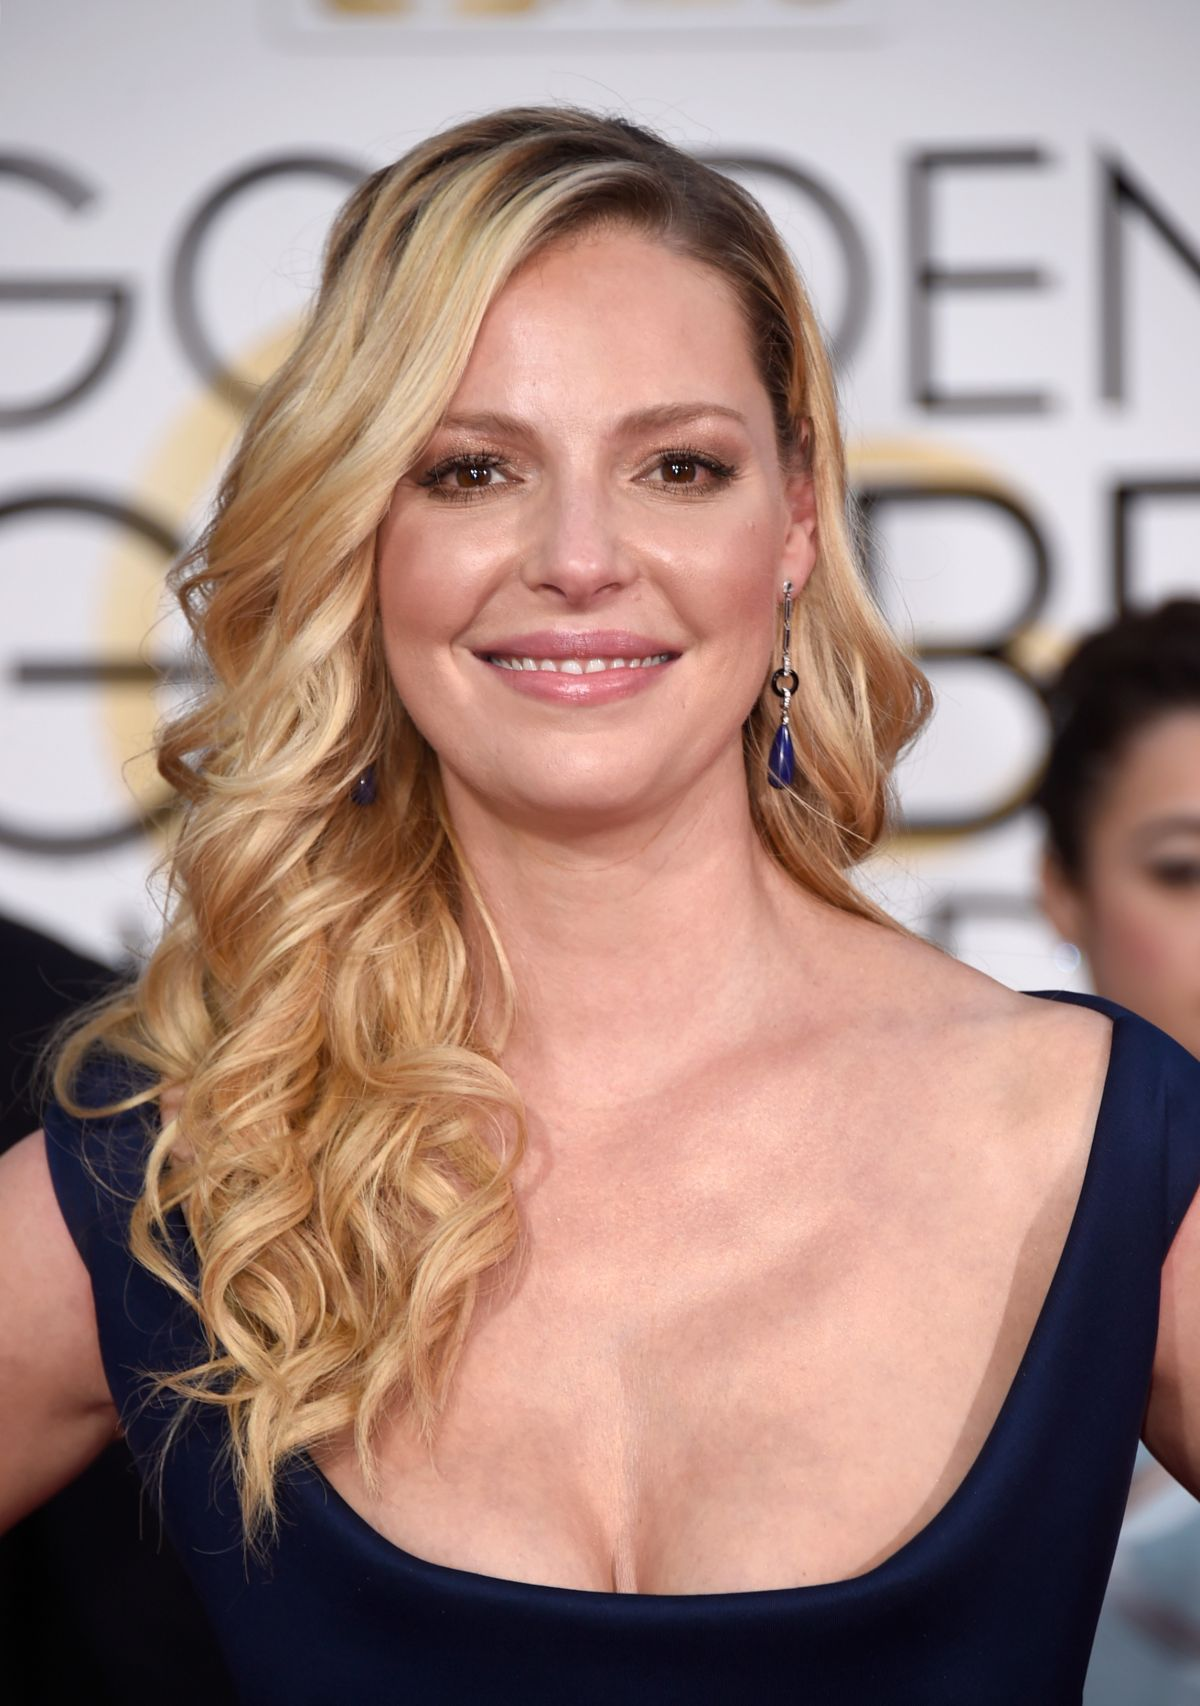 Katherine Heigl At 72nd Annual Golden Globe Awards - Celebzz - Celebzz Katherine Heigl